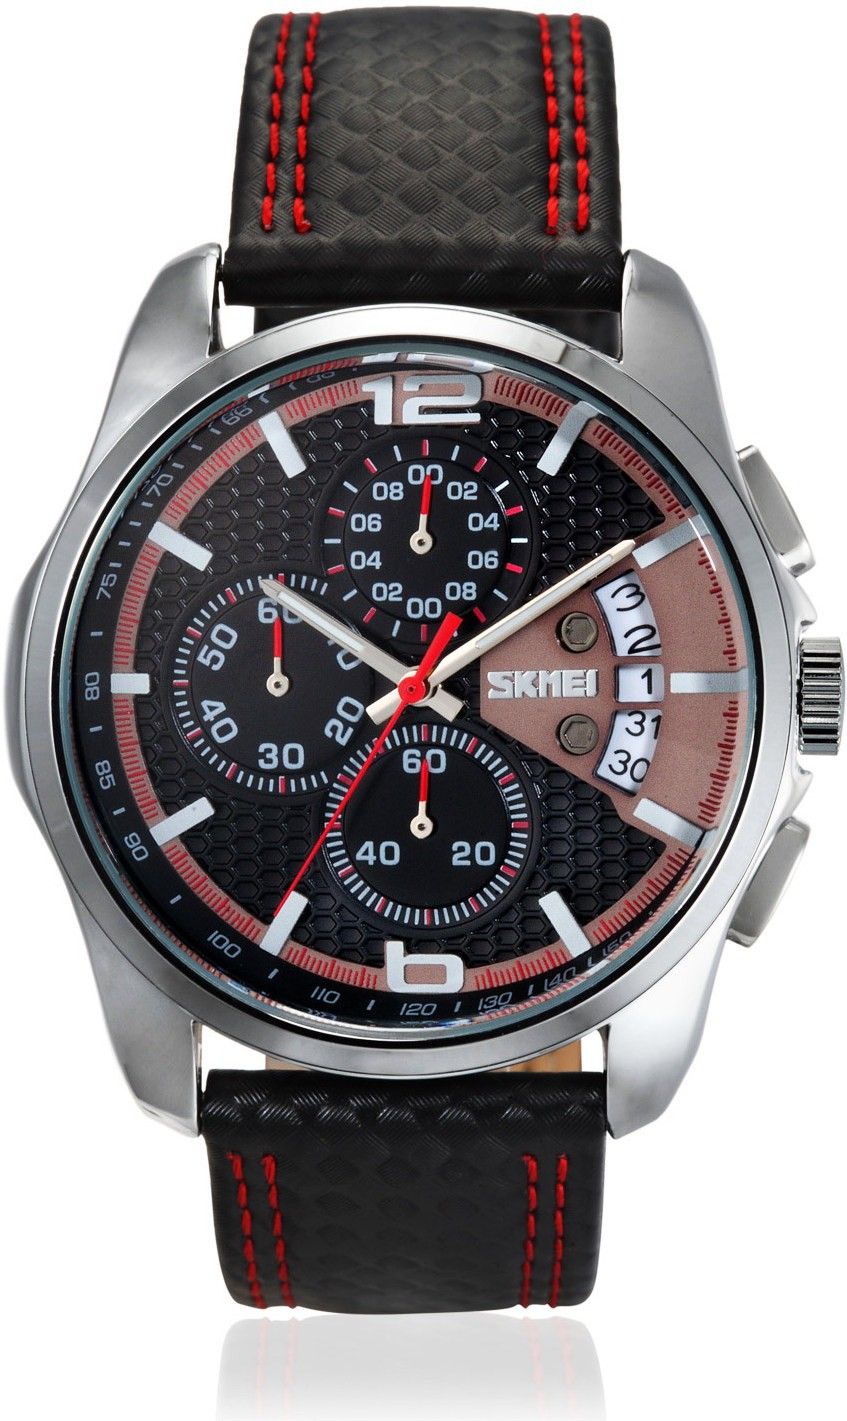 Deals - Delhi - Timex, Maxima... <br> Mens Watches<br> Category - watches<br> Business - Flipkart.com